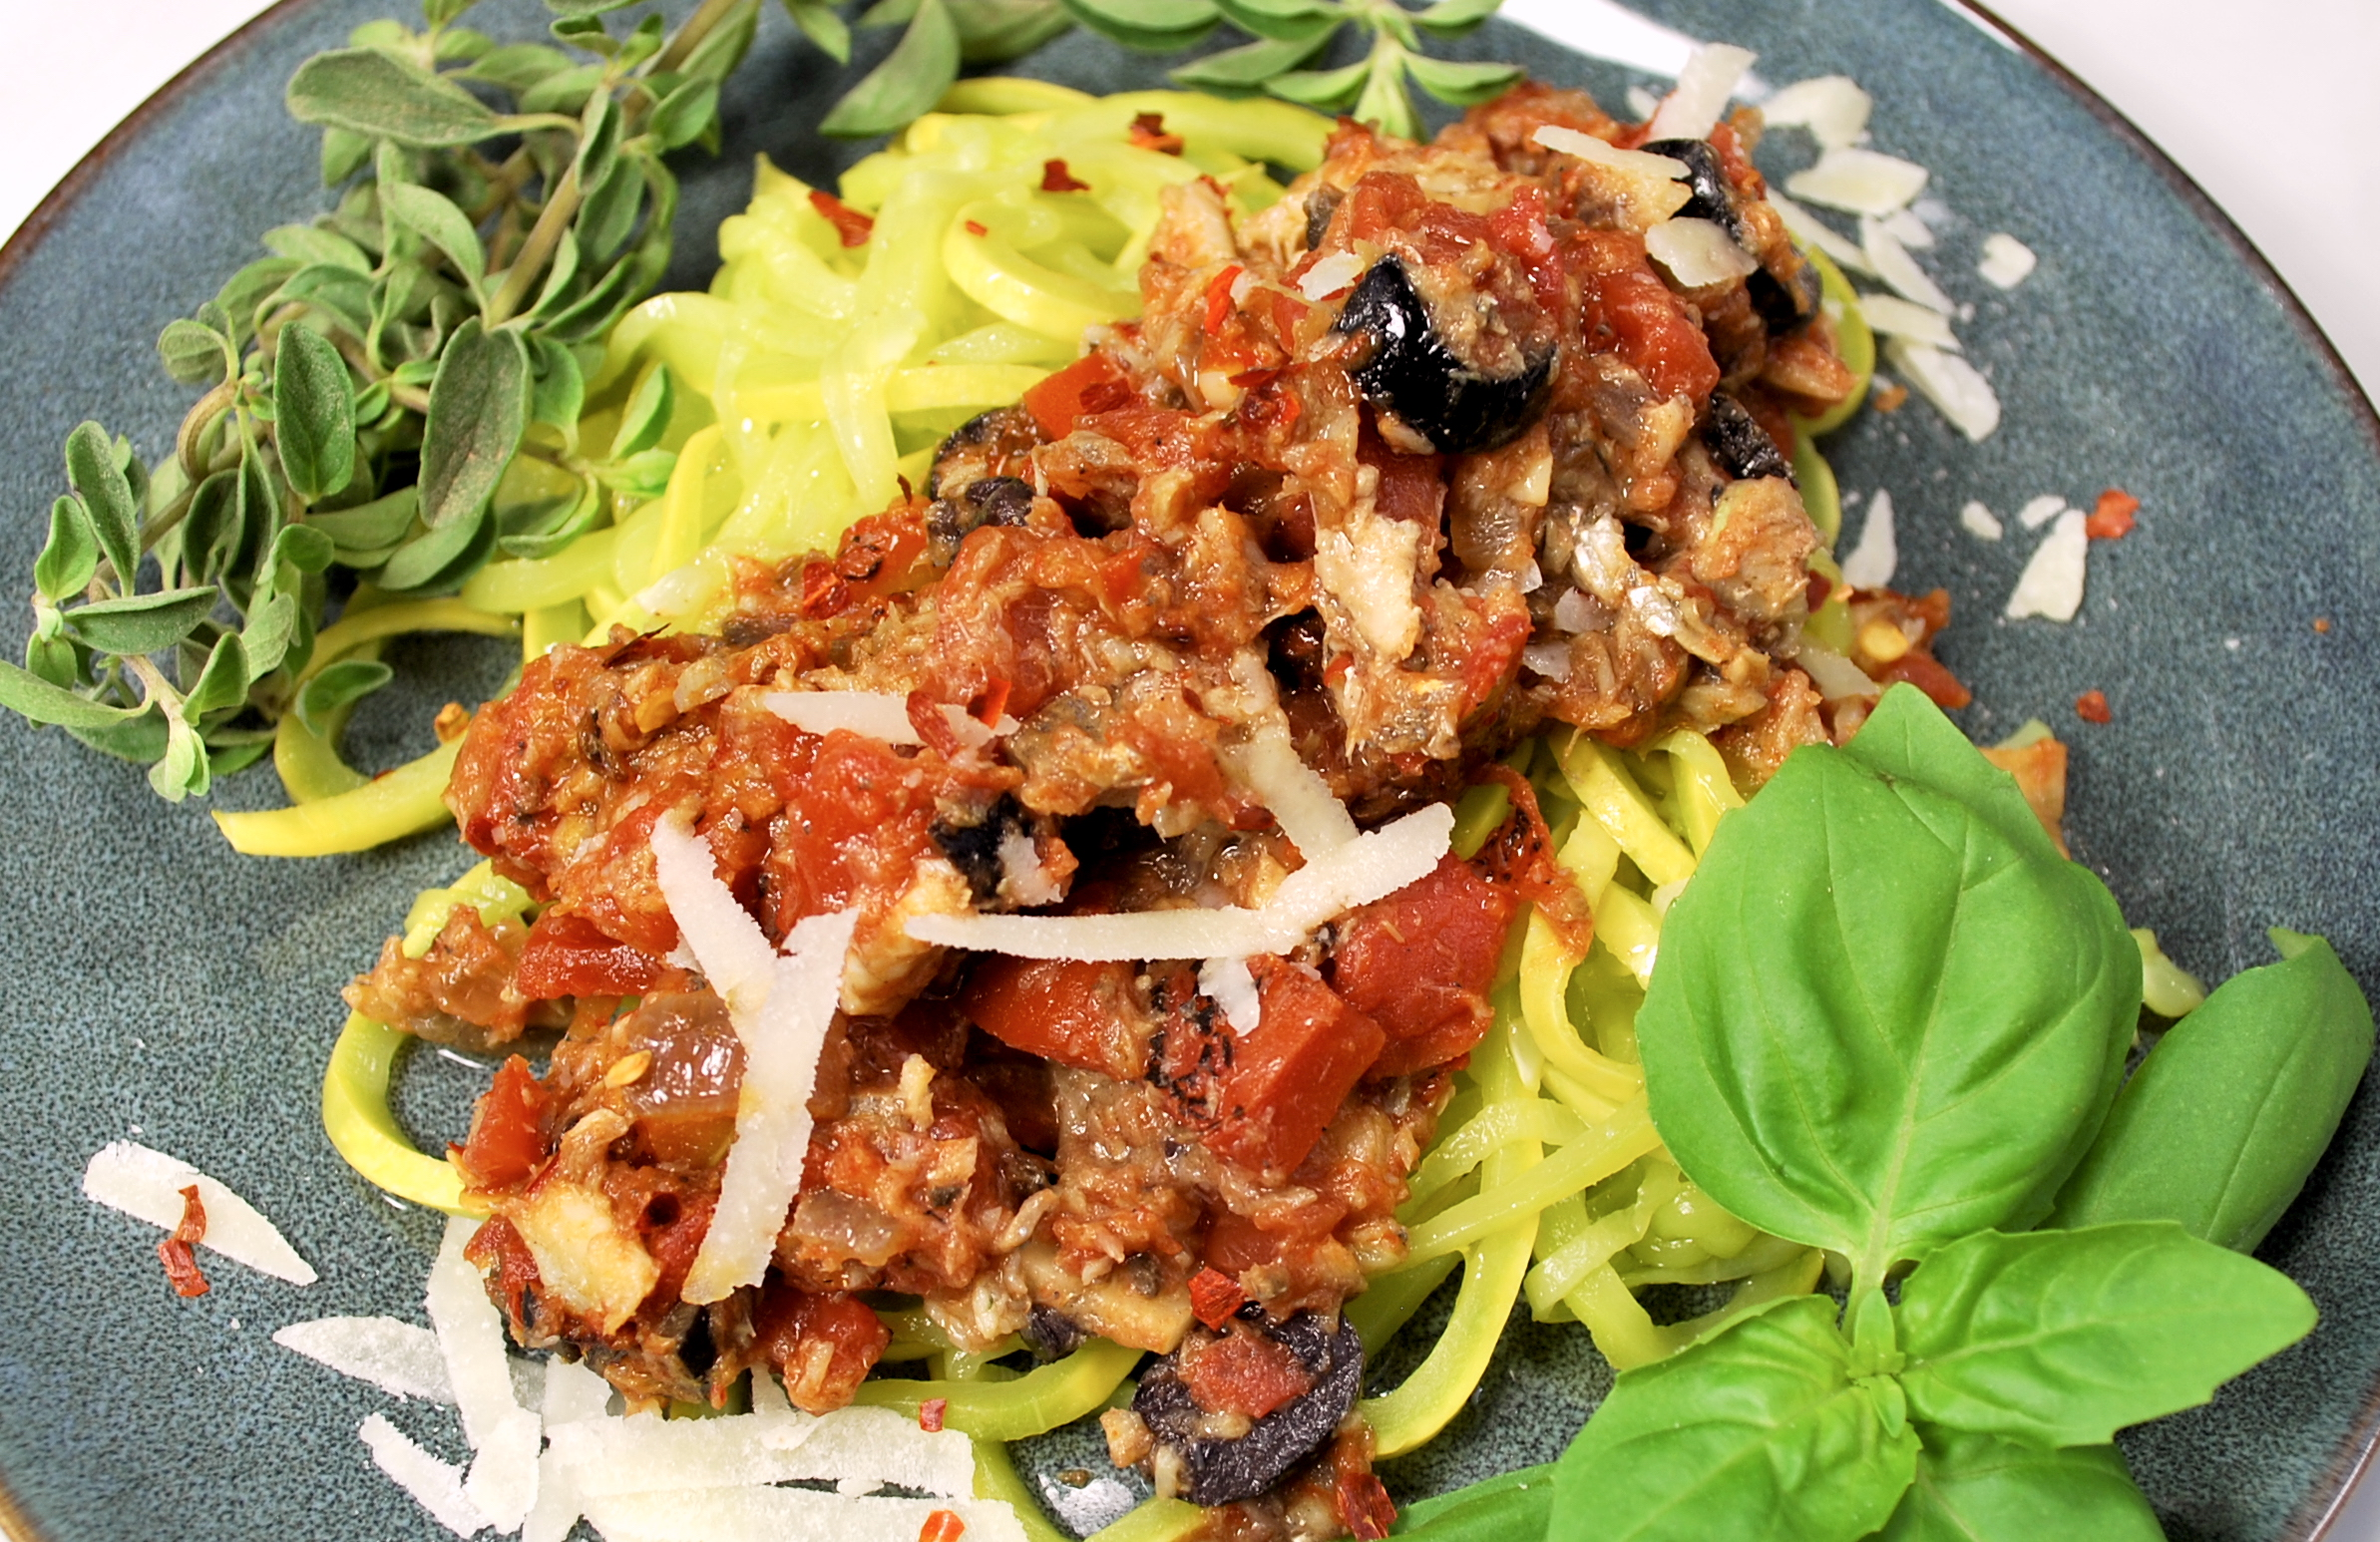 spiralizing recipes - pasta puttanesca